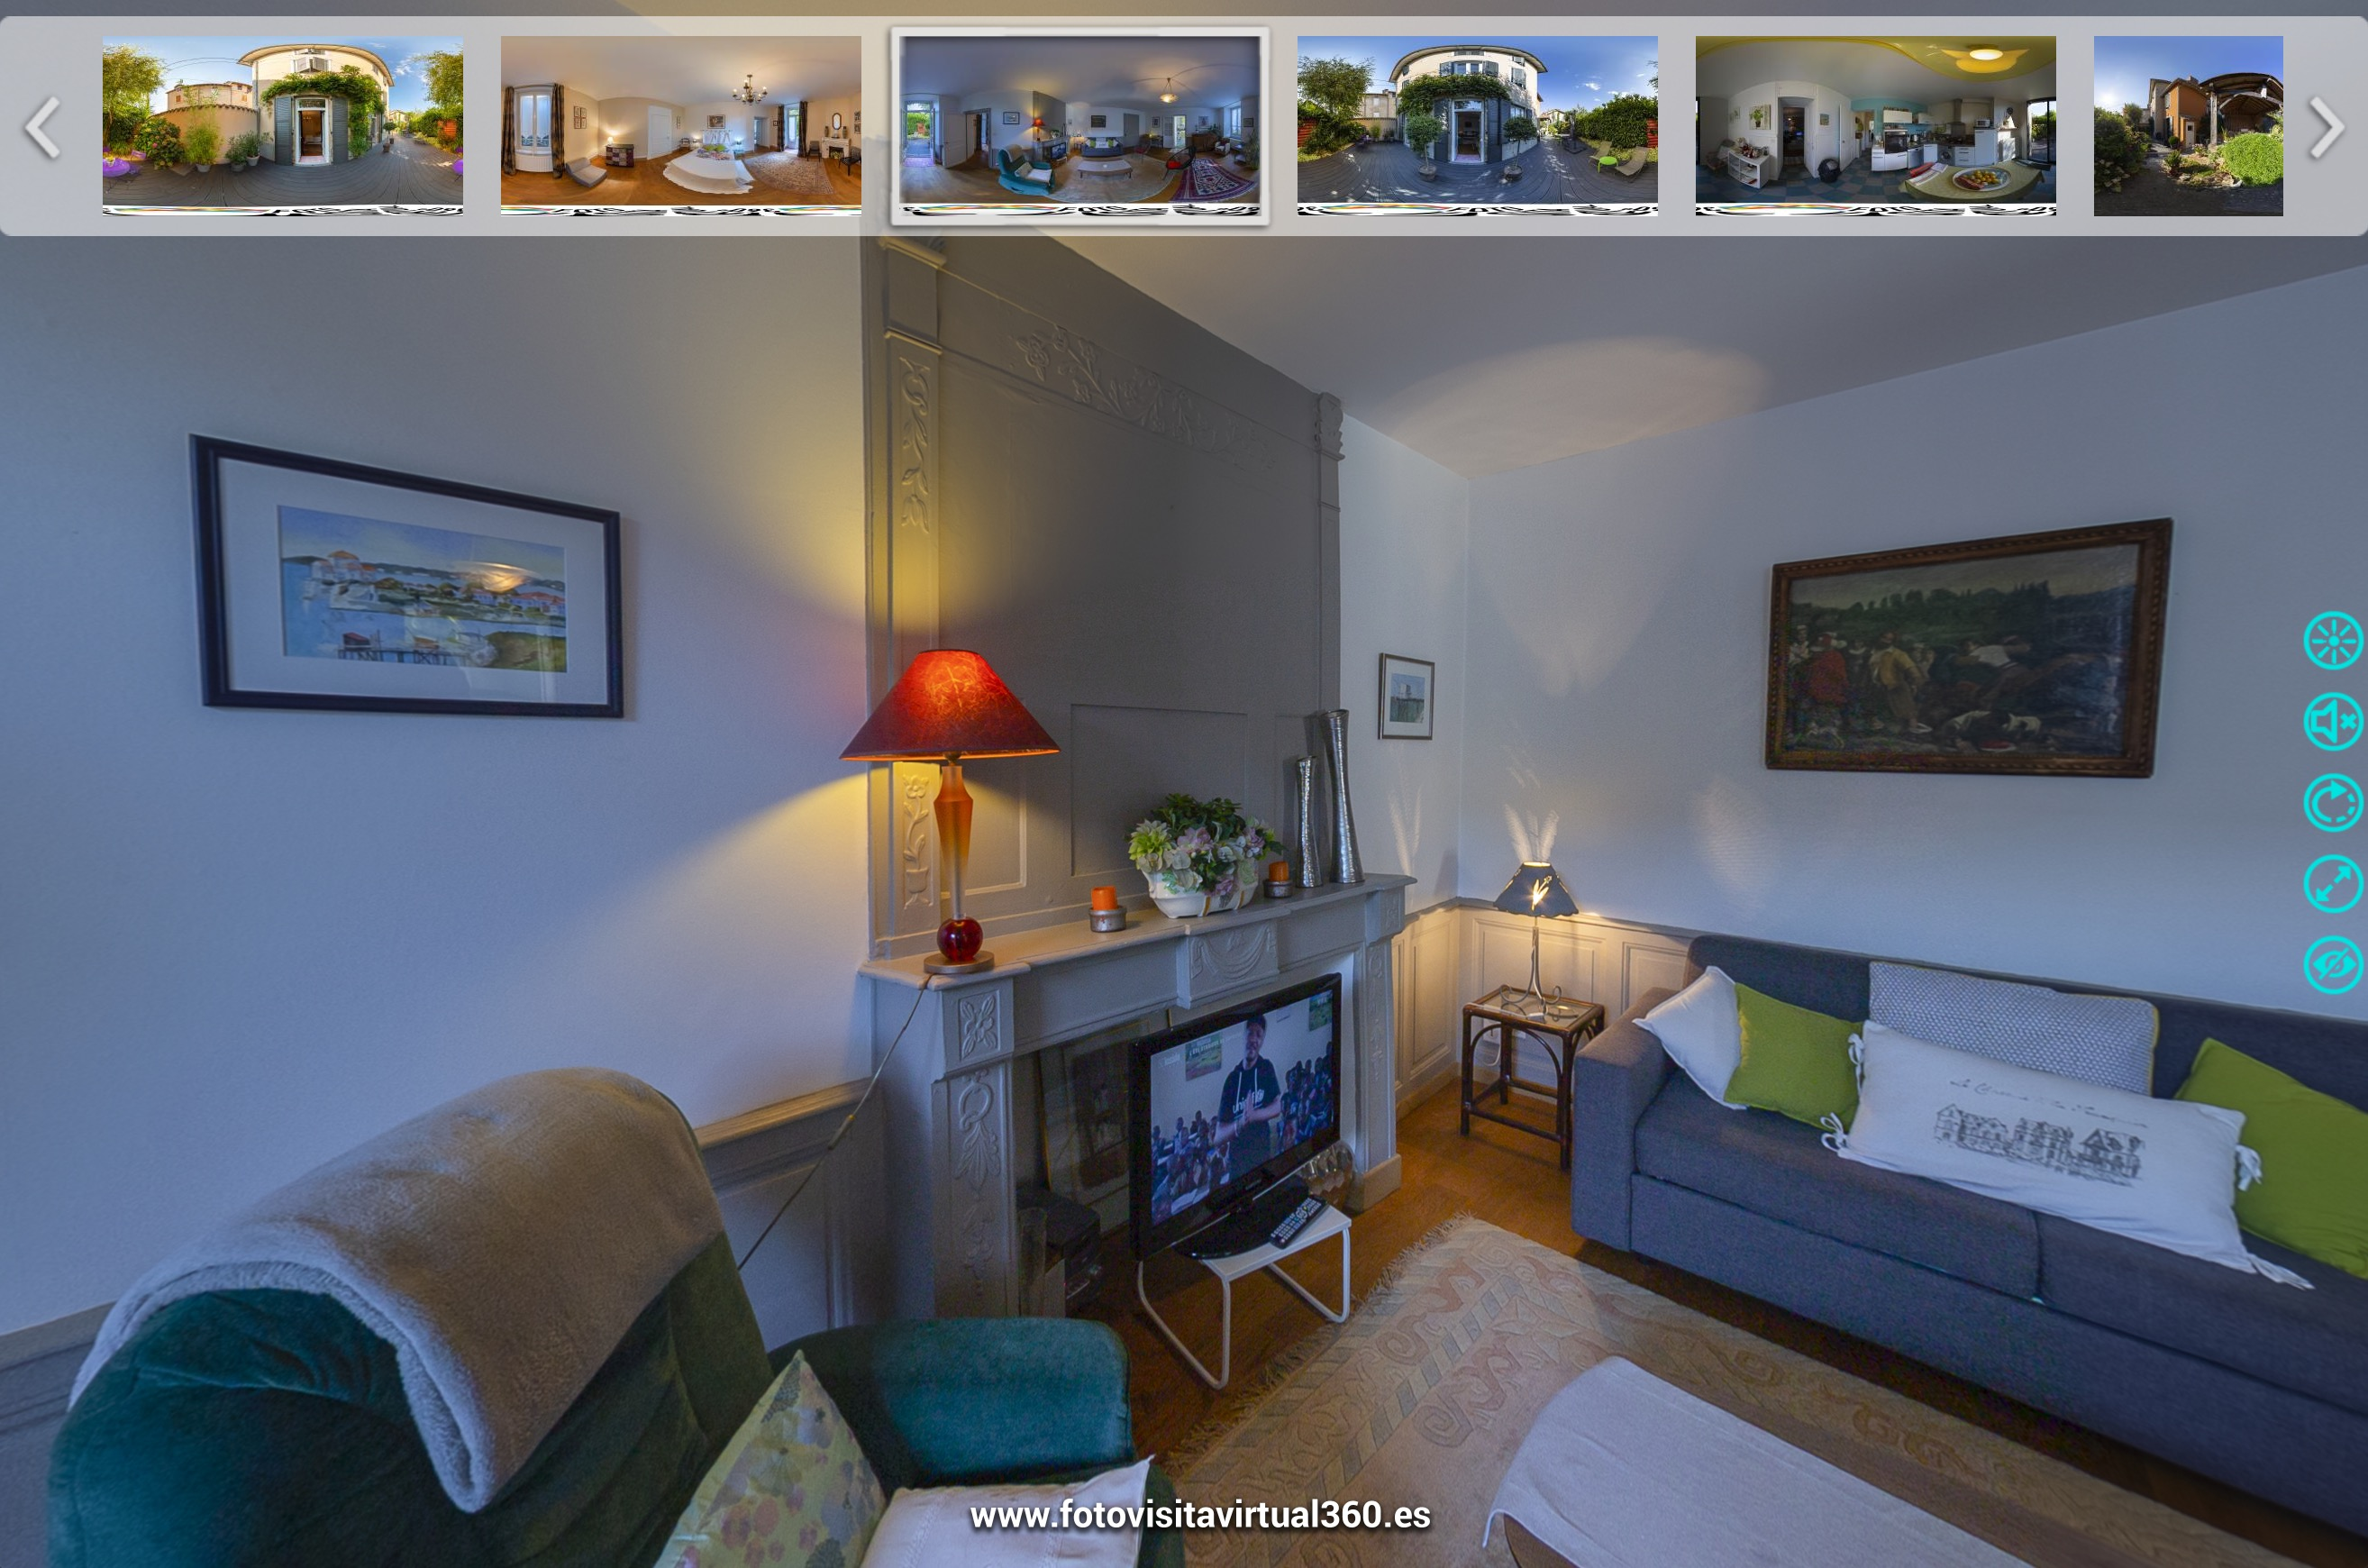 Home-staging-tour-virtual